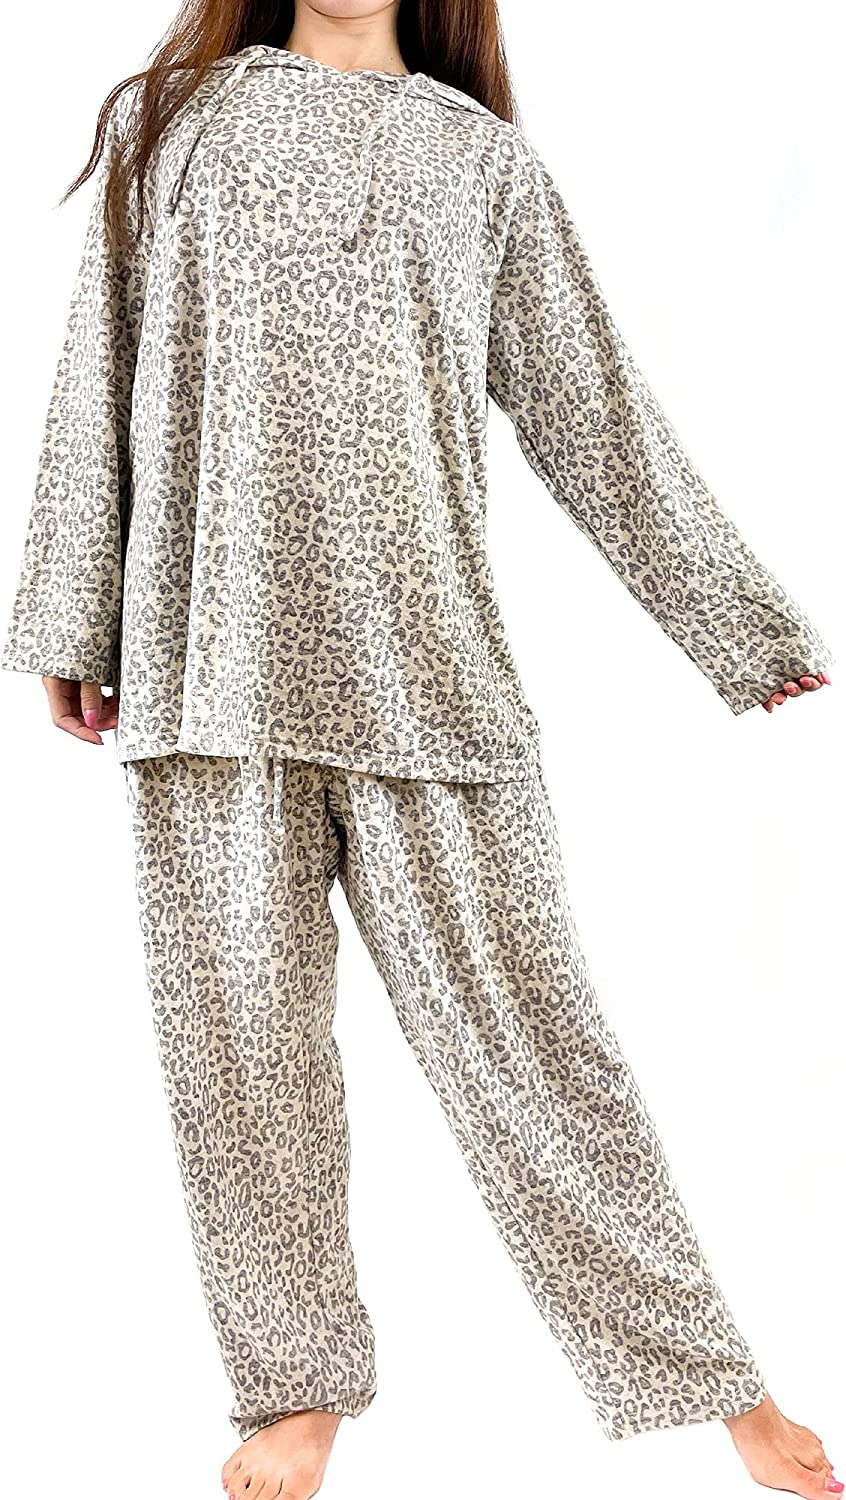 Brittany Black Women's French Terry Knit Patterned Long Sleeve Hoodie Tops and Pants Pajamas Set Loungewear